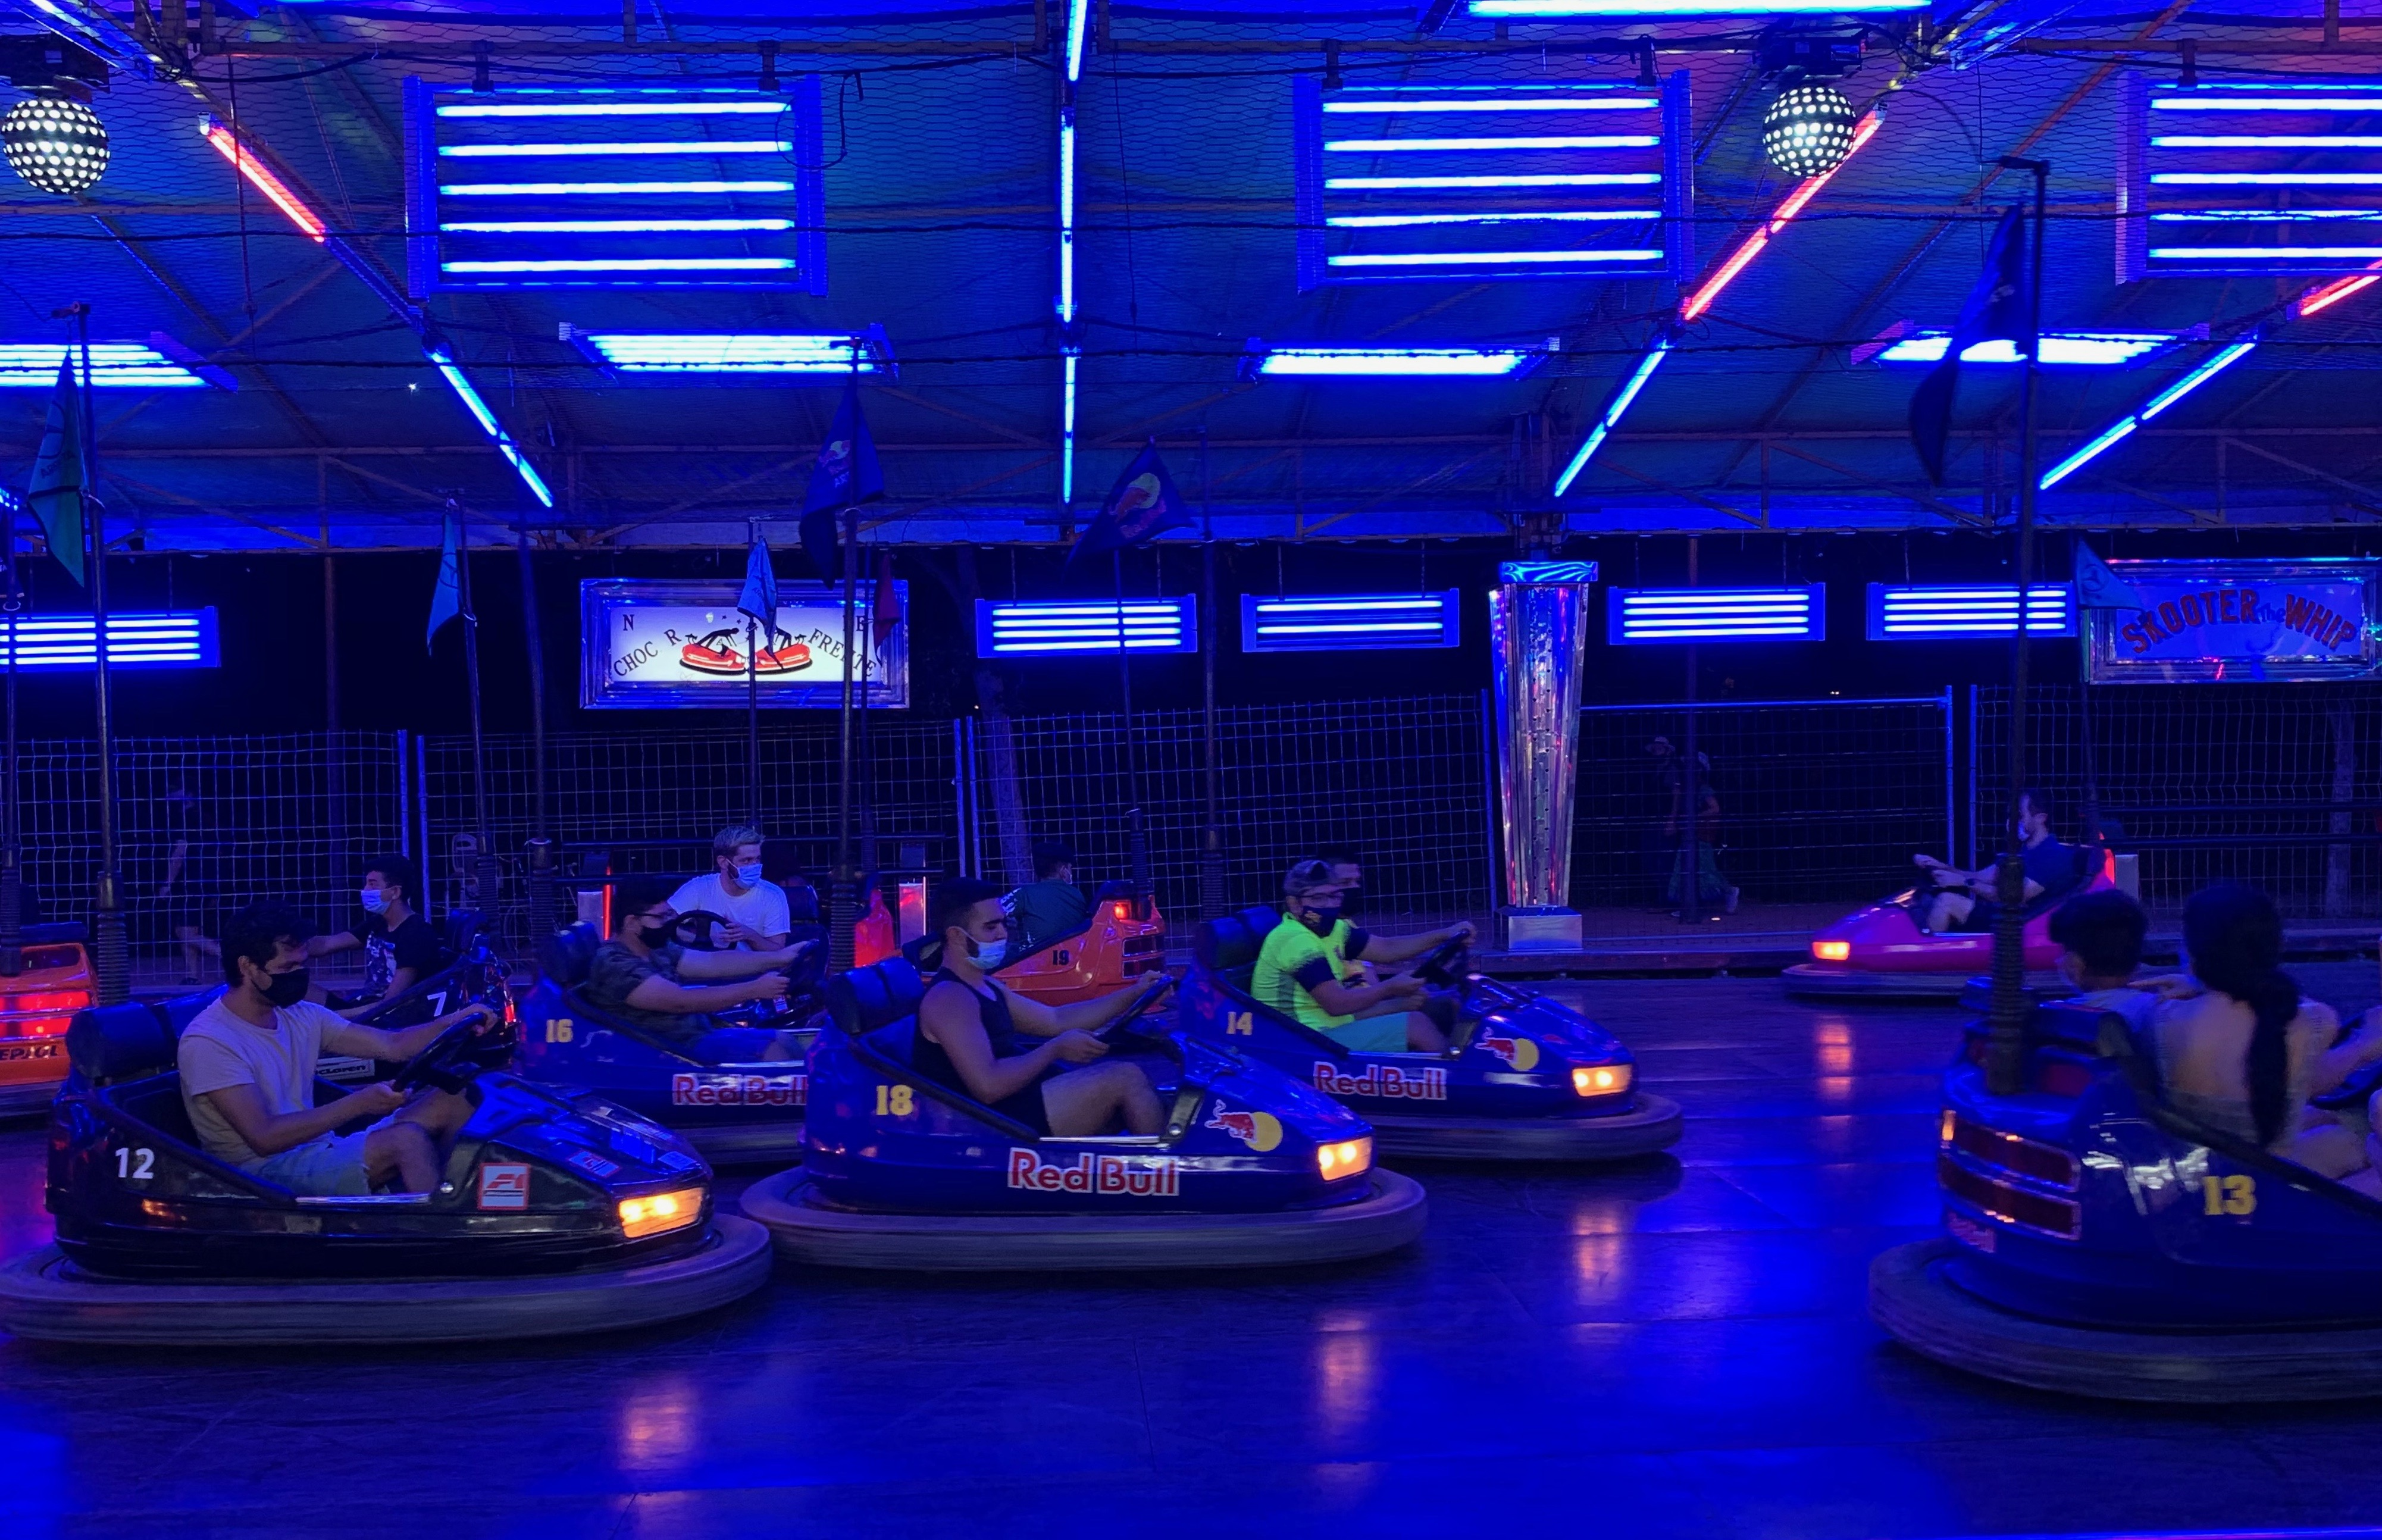 IP7bluebumpercars